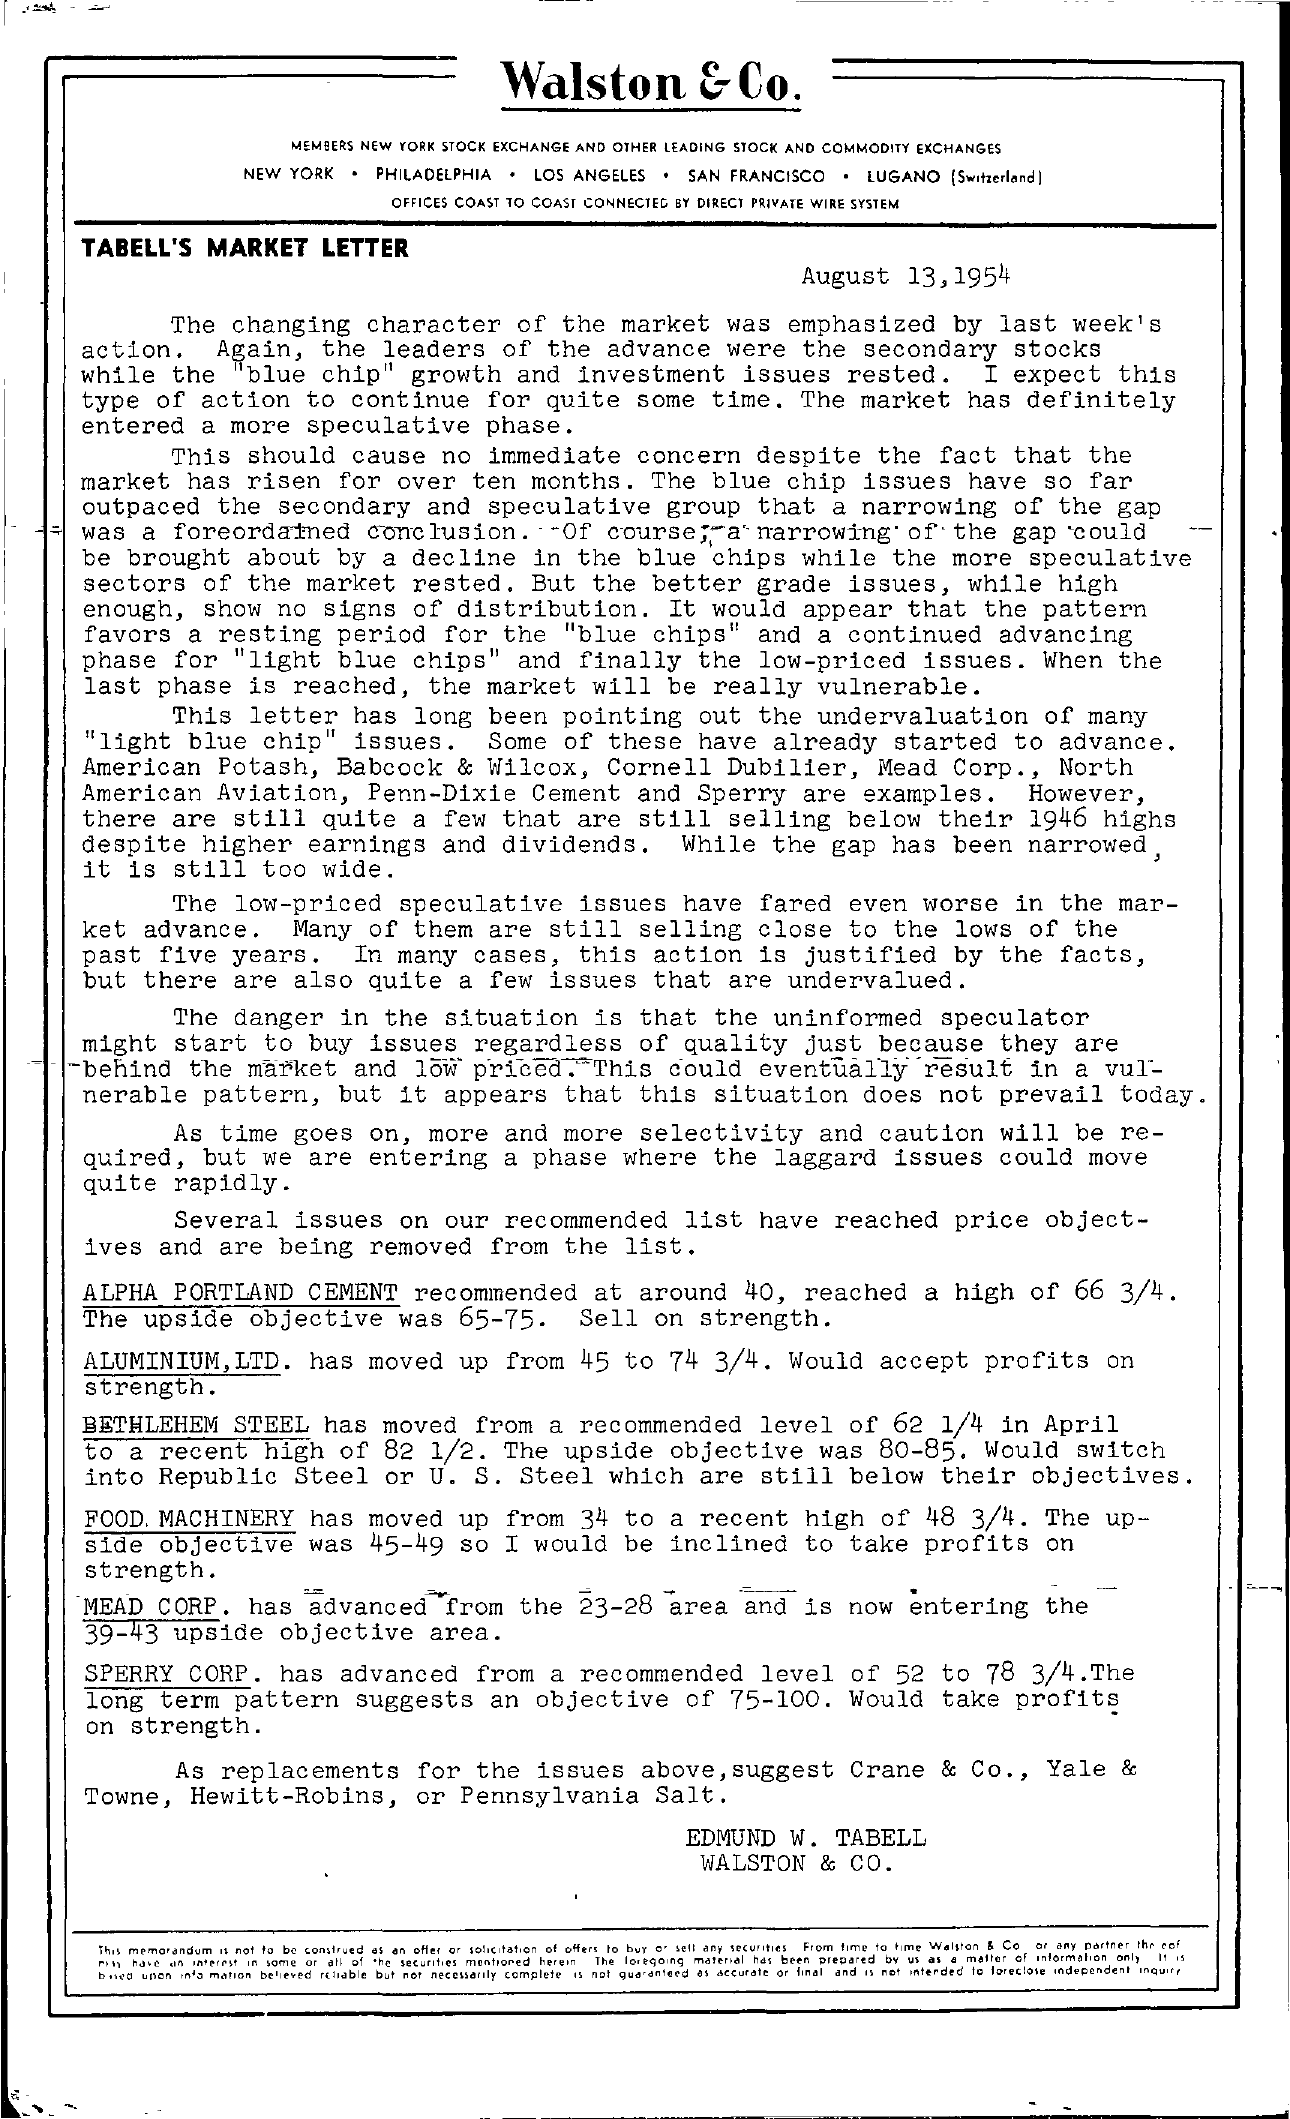 Tabell's Market Letter - August 13, 1954